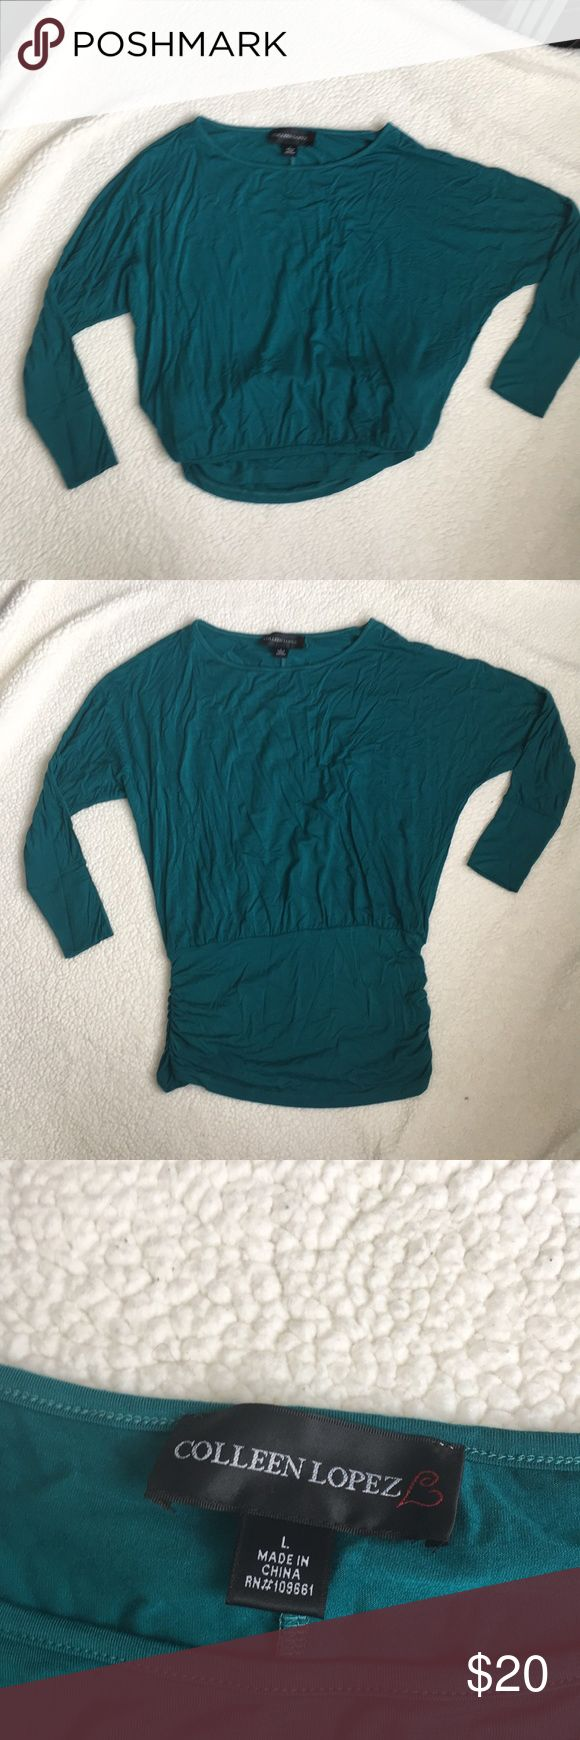 Teal Slouchy Top Super cute, no wear, only worn a couple of times. Can be dressed up or down.   No trades, please comment with questions. Offers considered through offer button only. colleen lopez Tops Blouses